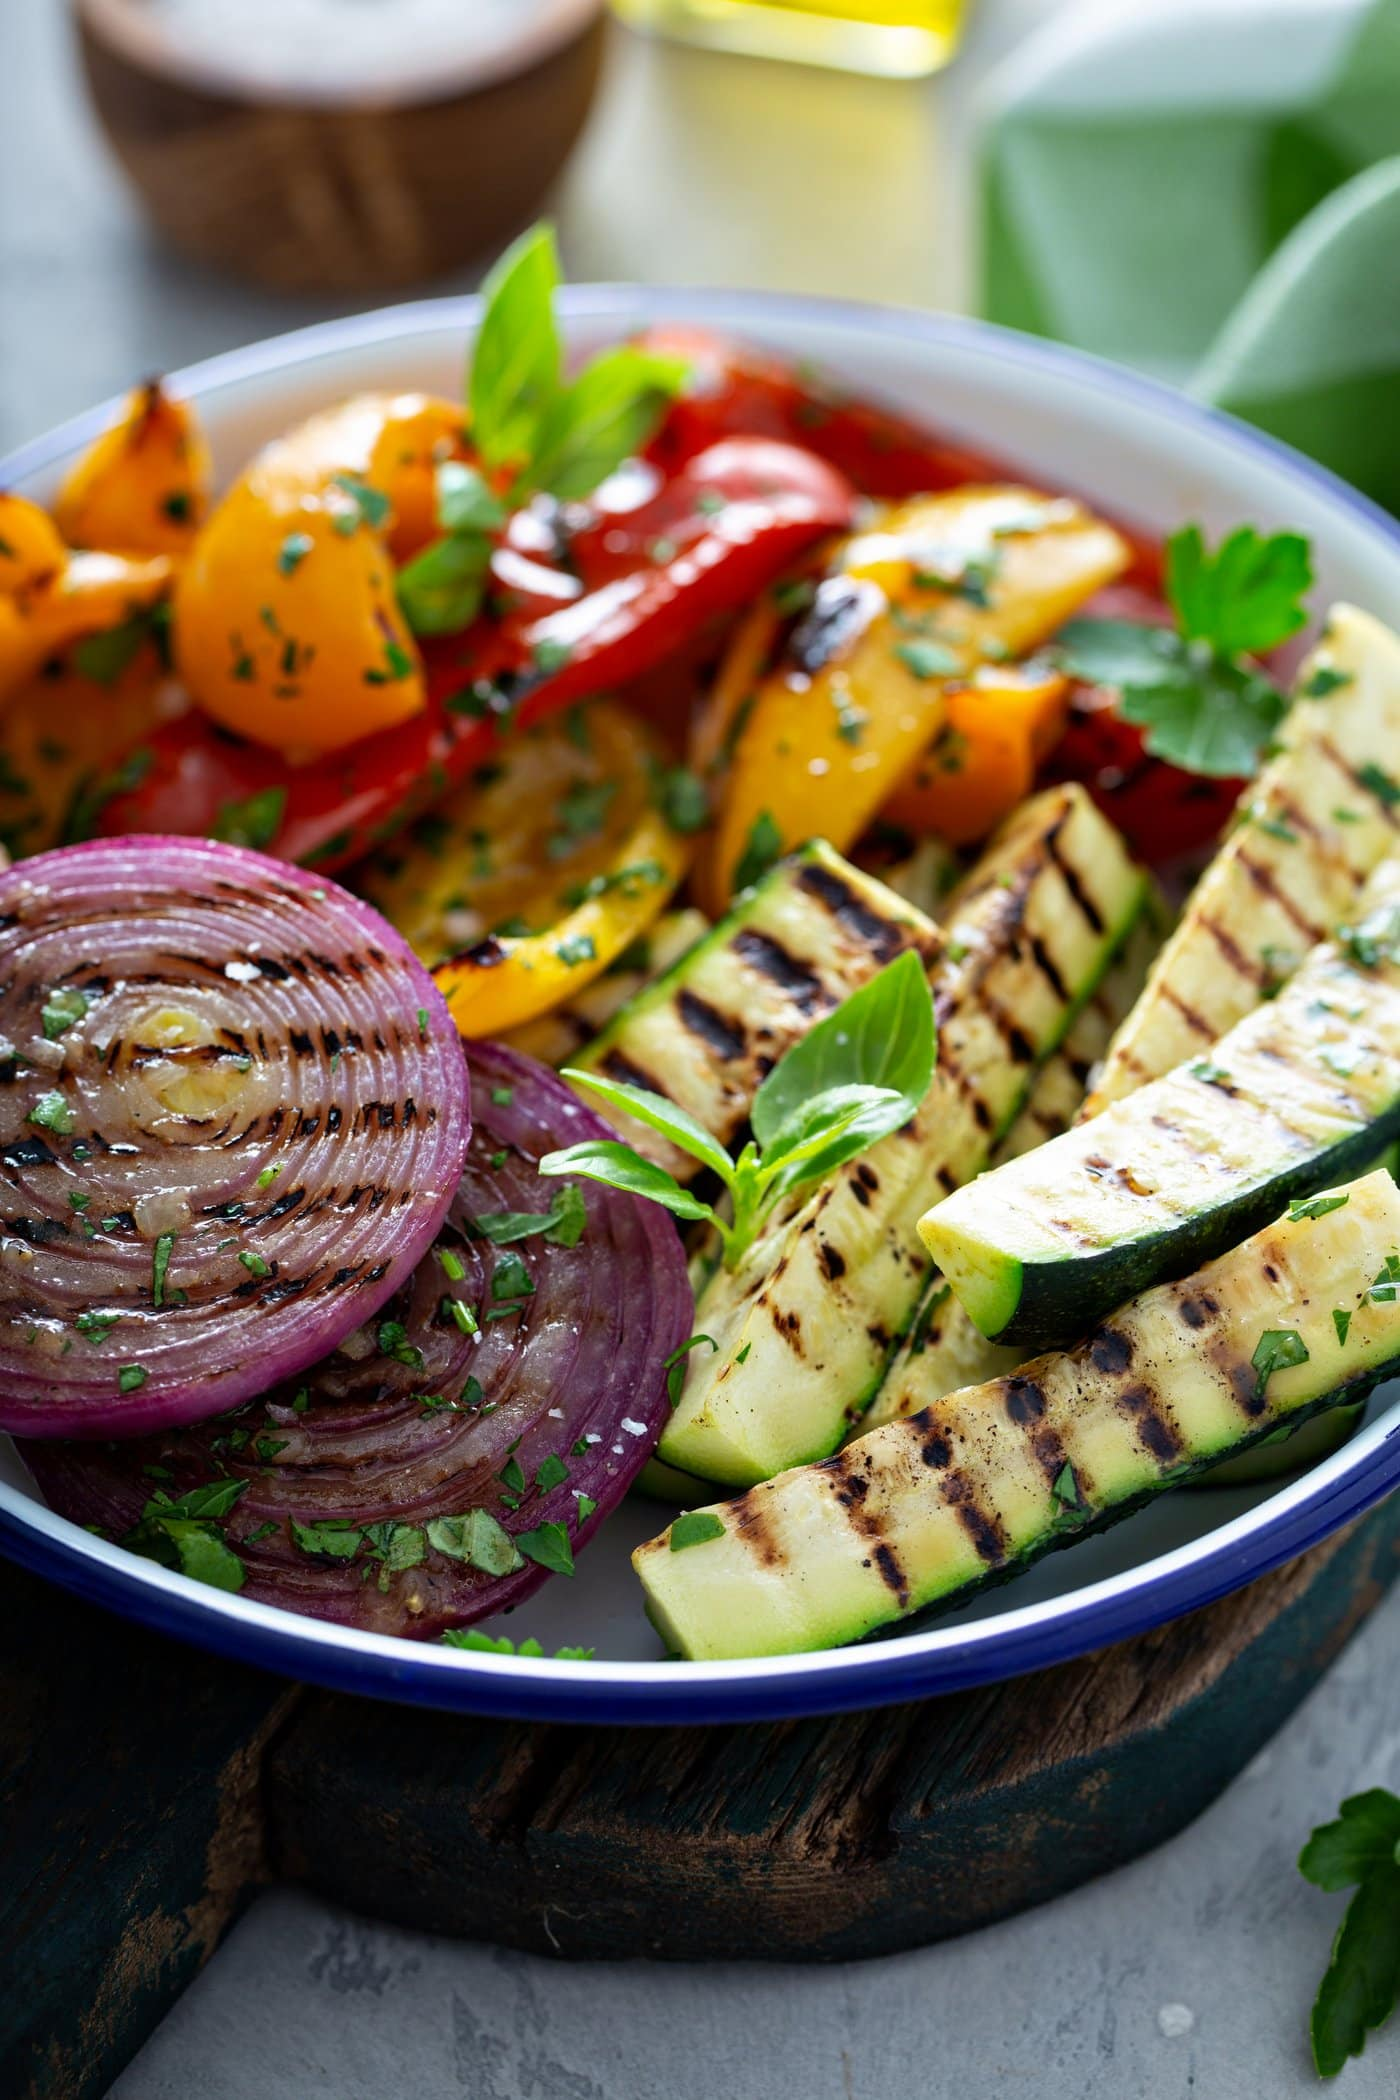 A serving dish of grilled veggies. The zucchini wedges, sliced red onions, and red and yellow bell peppers have perfect grill marks. and the veggies have a few parsley leaves scattered on top.